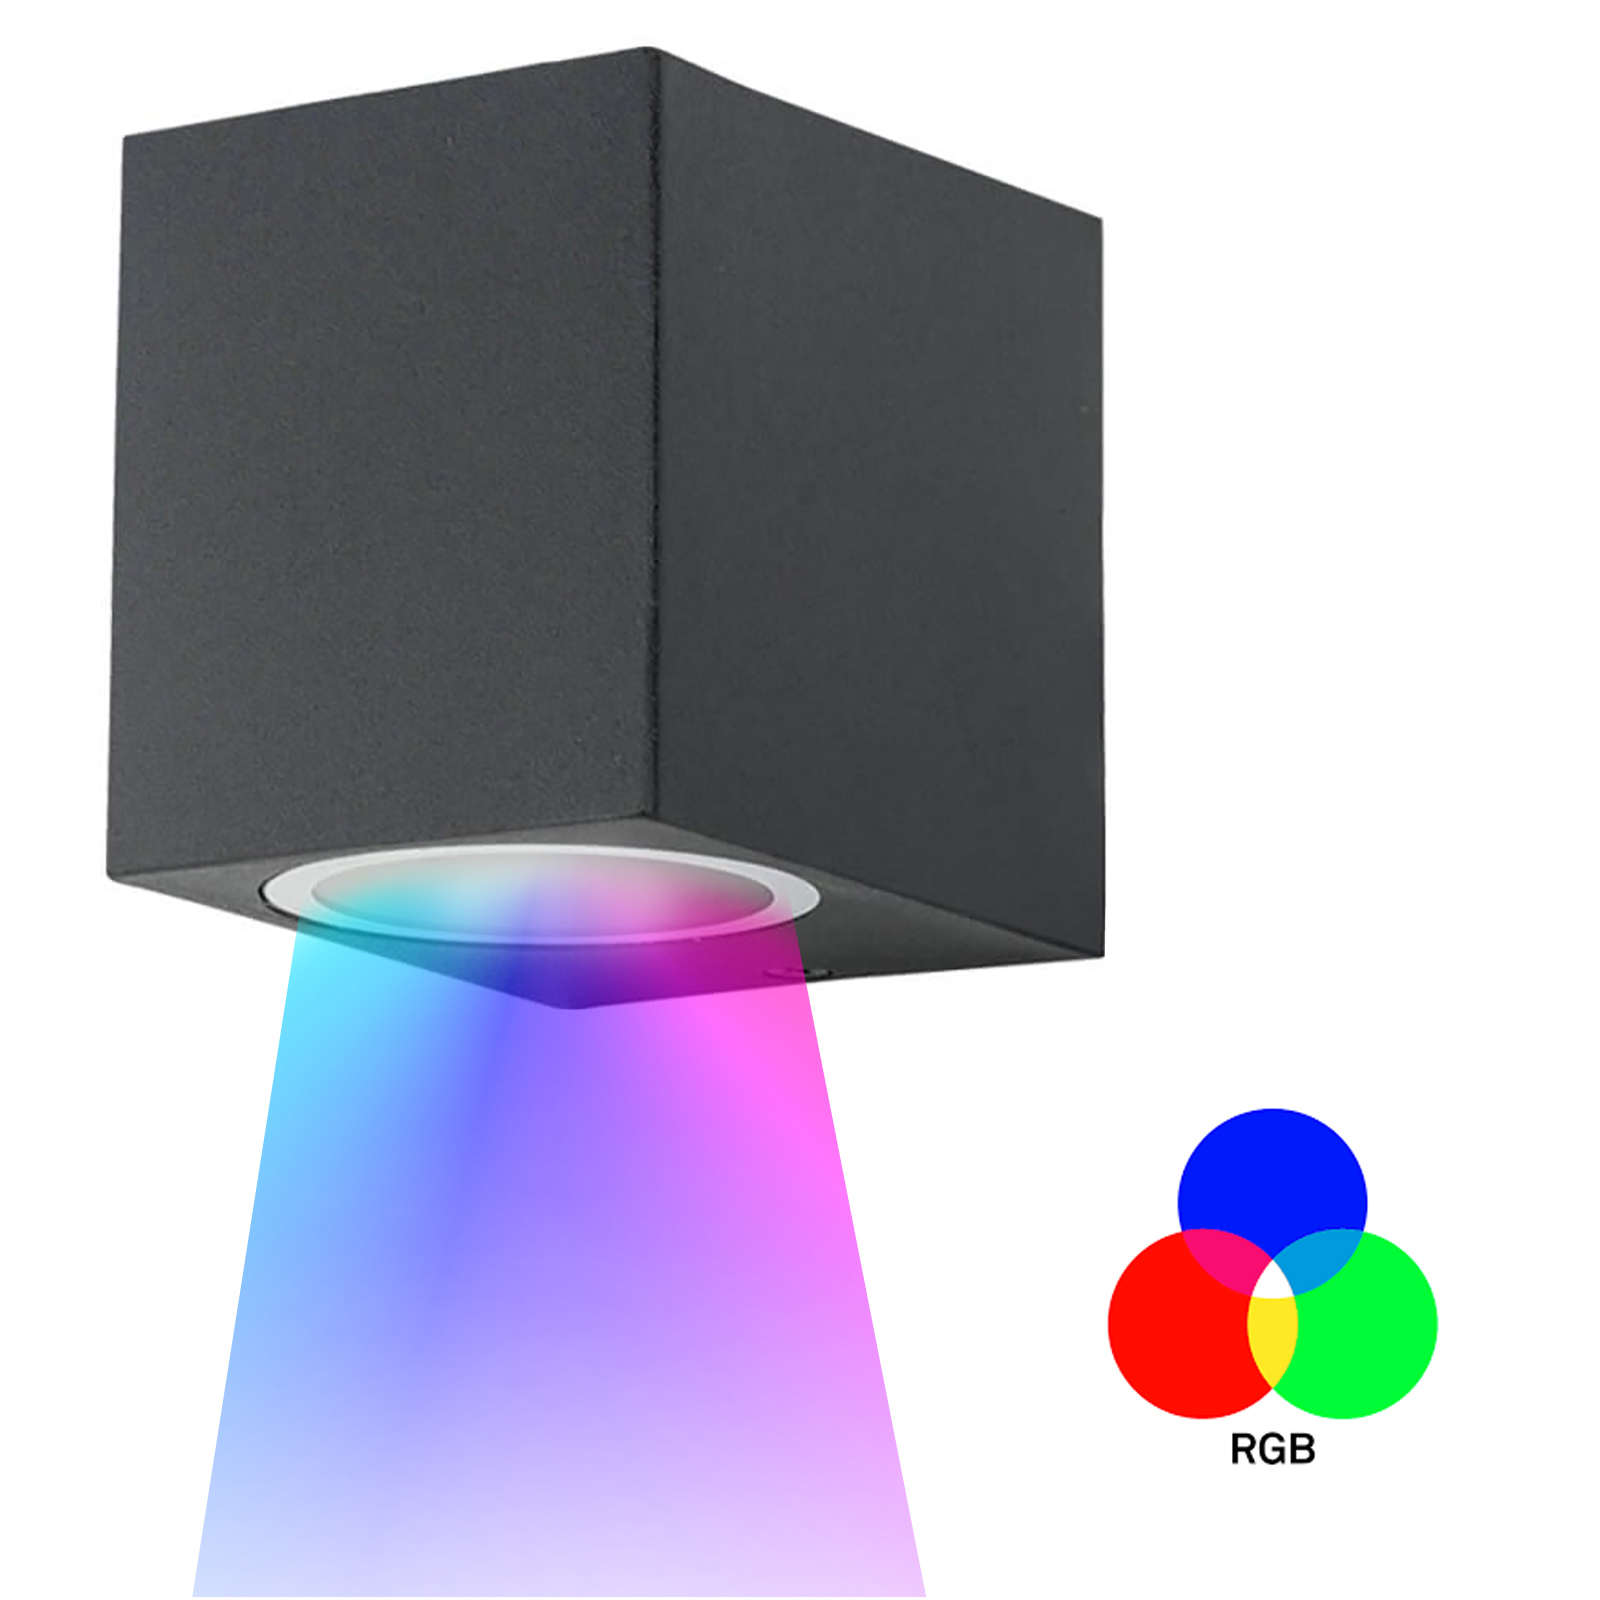 Applique light, led rgb multi color cube lamp wall outdoor RGBW in 1 beam light GU10